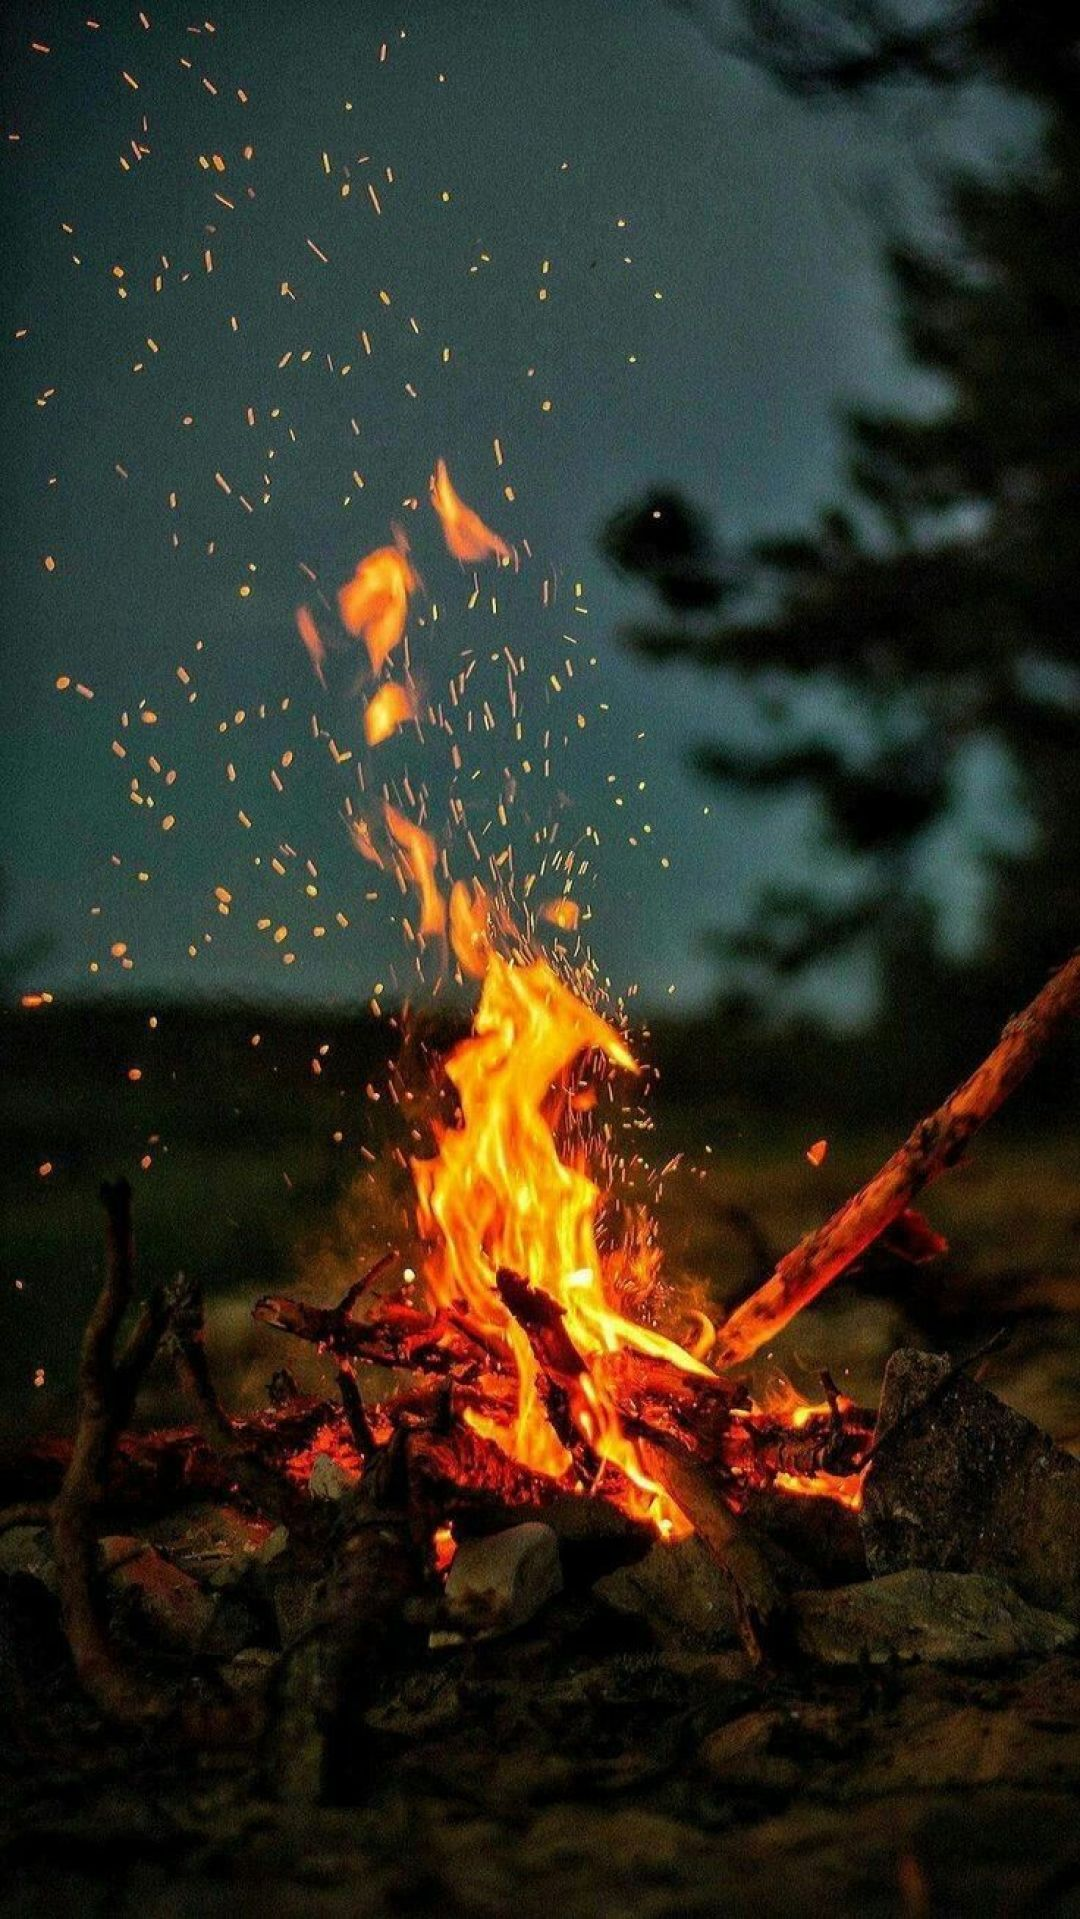 Fire Android Iphone Desktop Hd Backgrounds Wallpapers 1080p 4k 127476 Hdwallpapers Androidwal Camping Wallpaper Fire Photography Nature Wallpaper